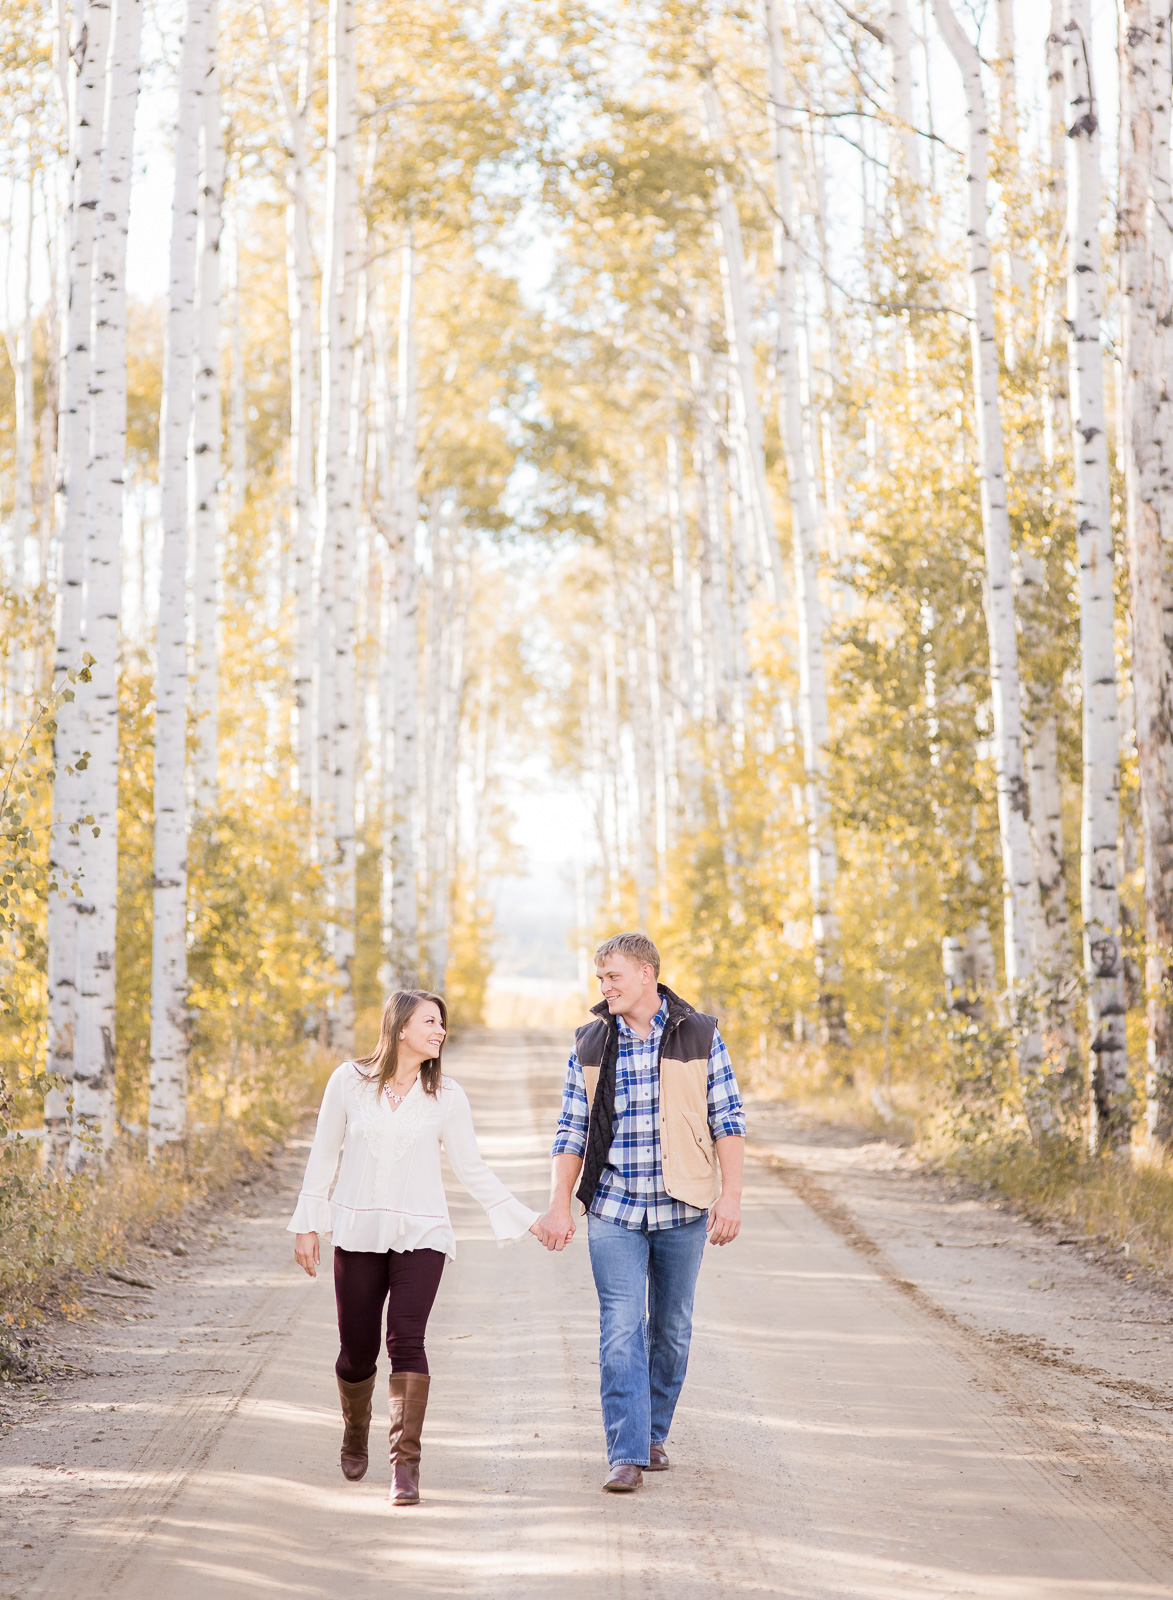 Sierra Madre Fall Engagement by Laramie based photographer, Megan Lee Photography